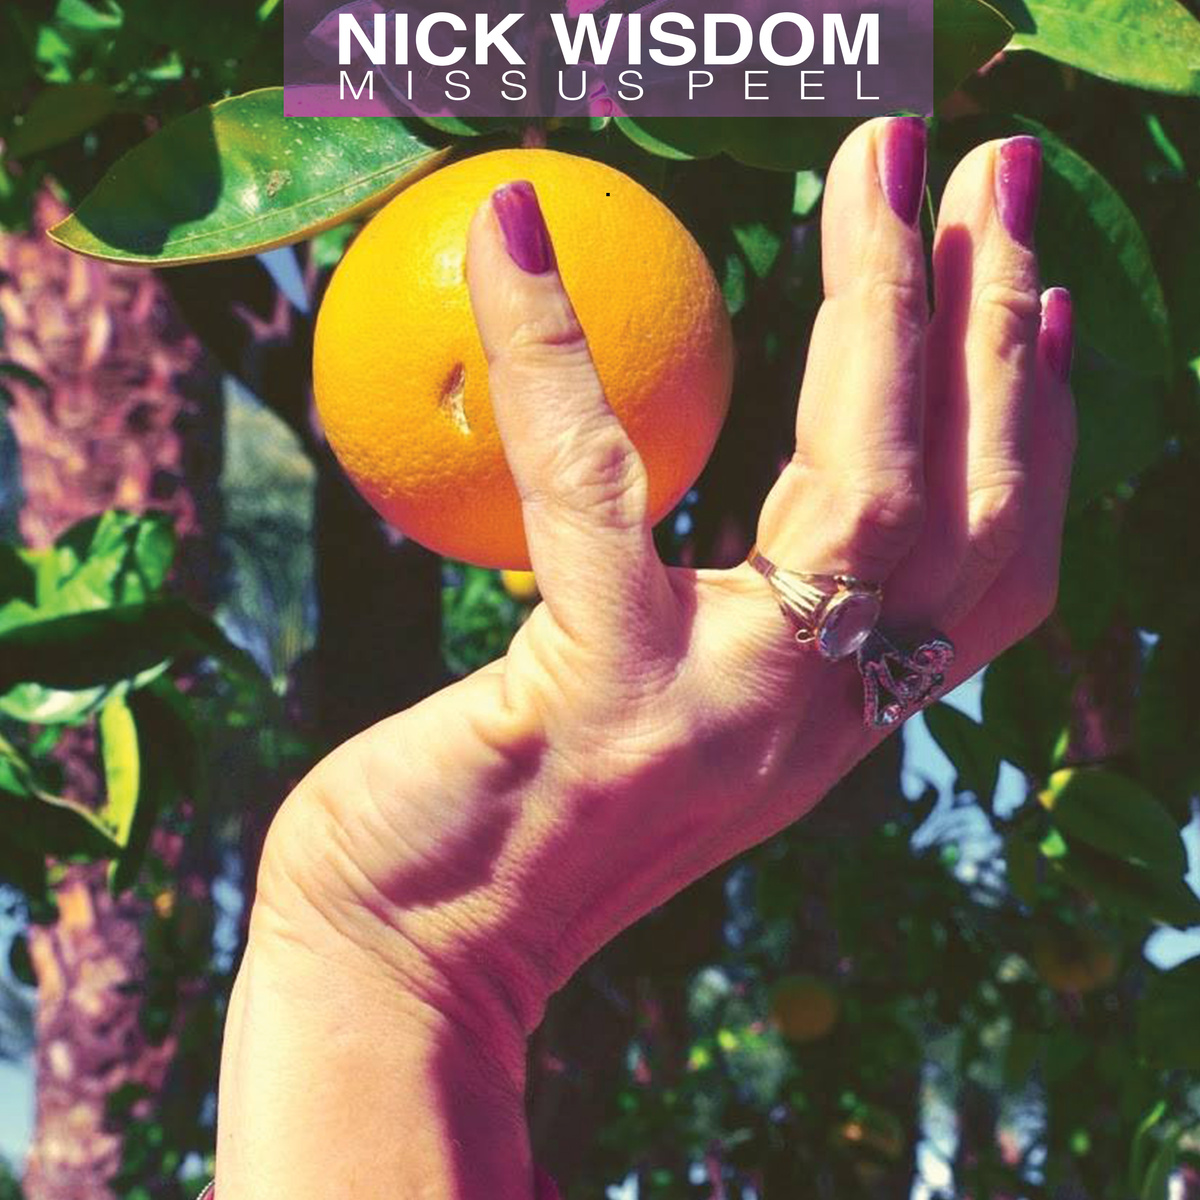 Free Download: Nick Wisdom – Missus Peel